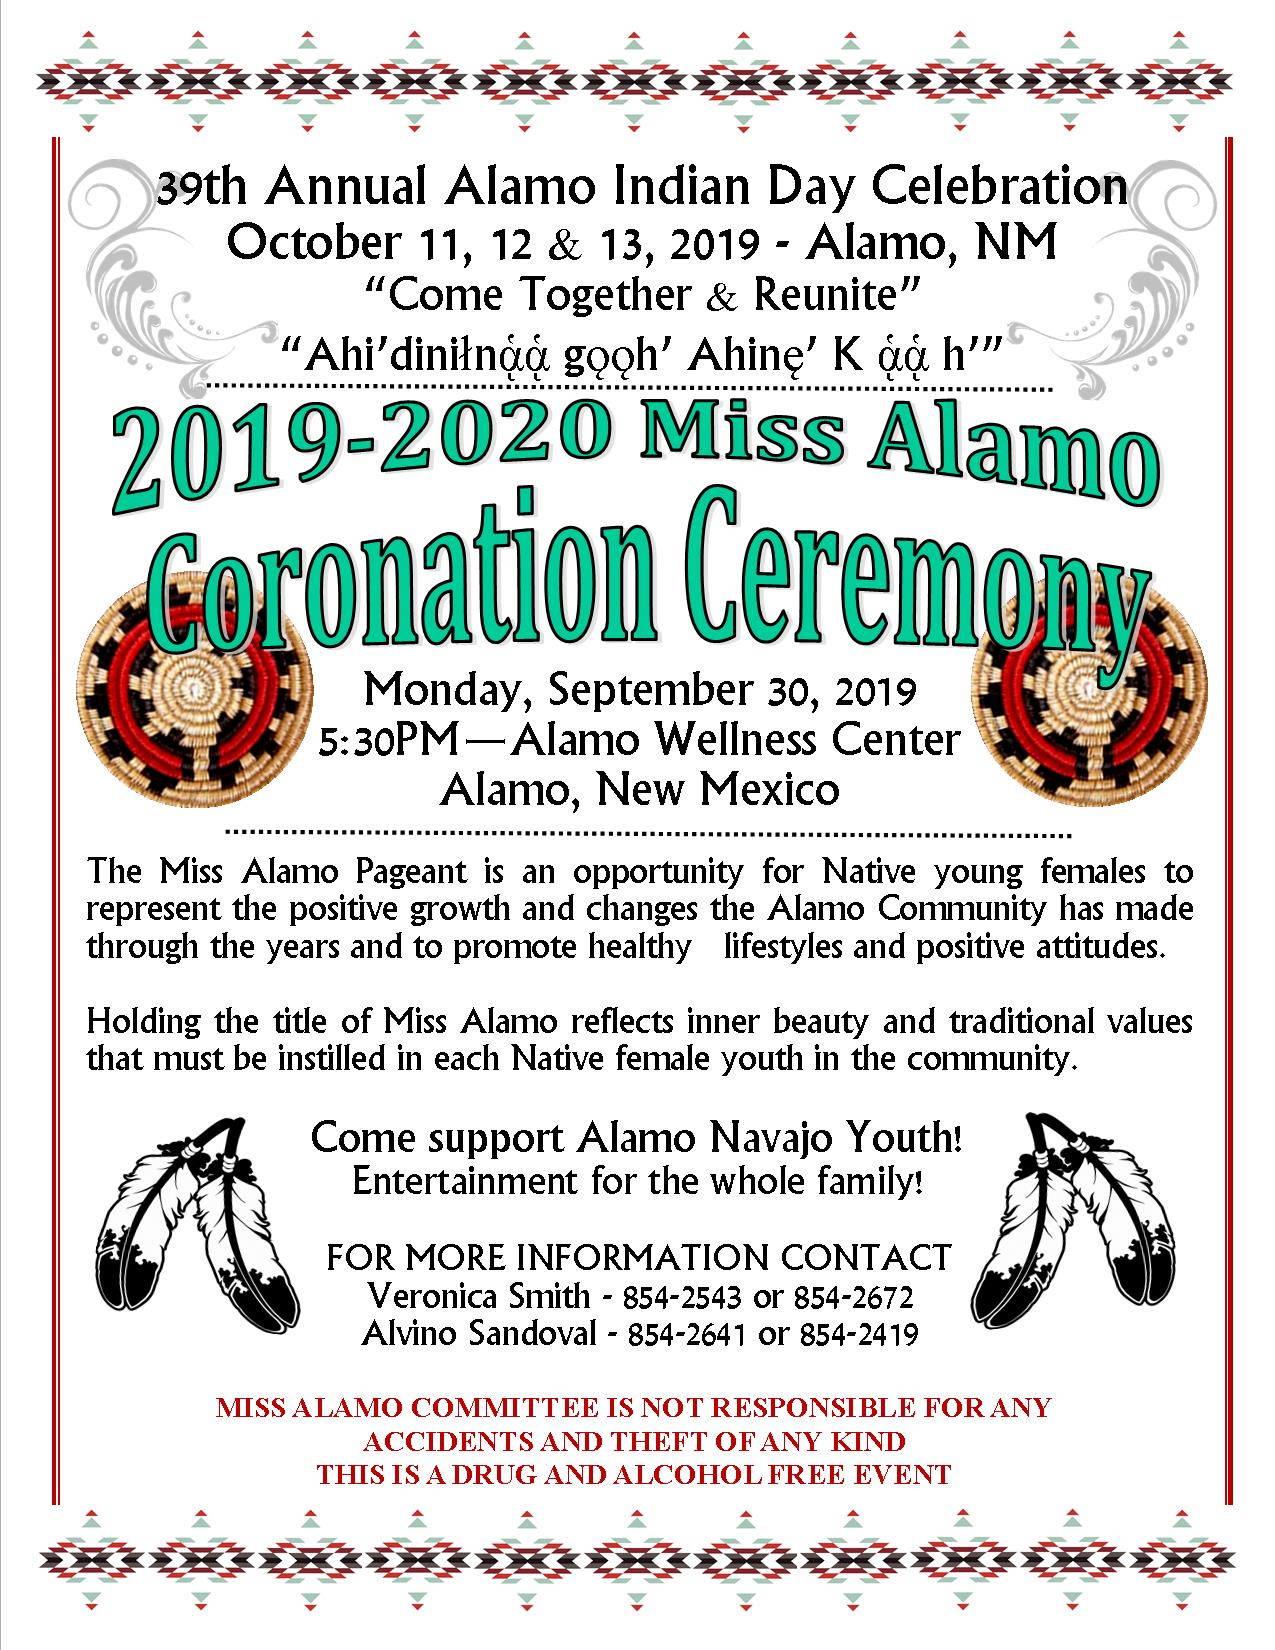 2019-2020 Miss Alamo Coronation Ceremony